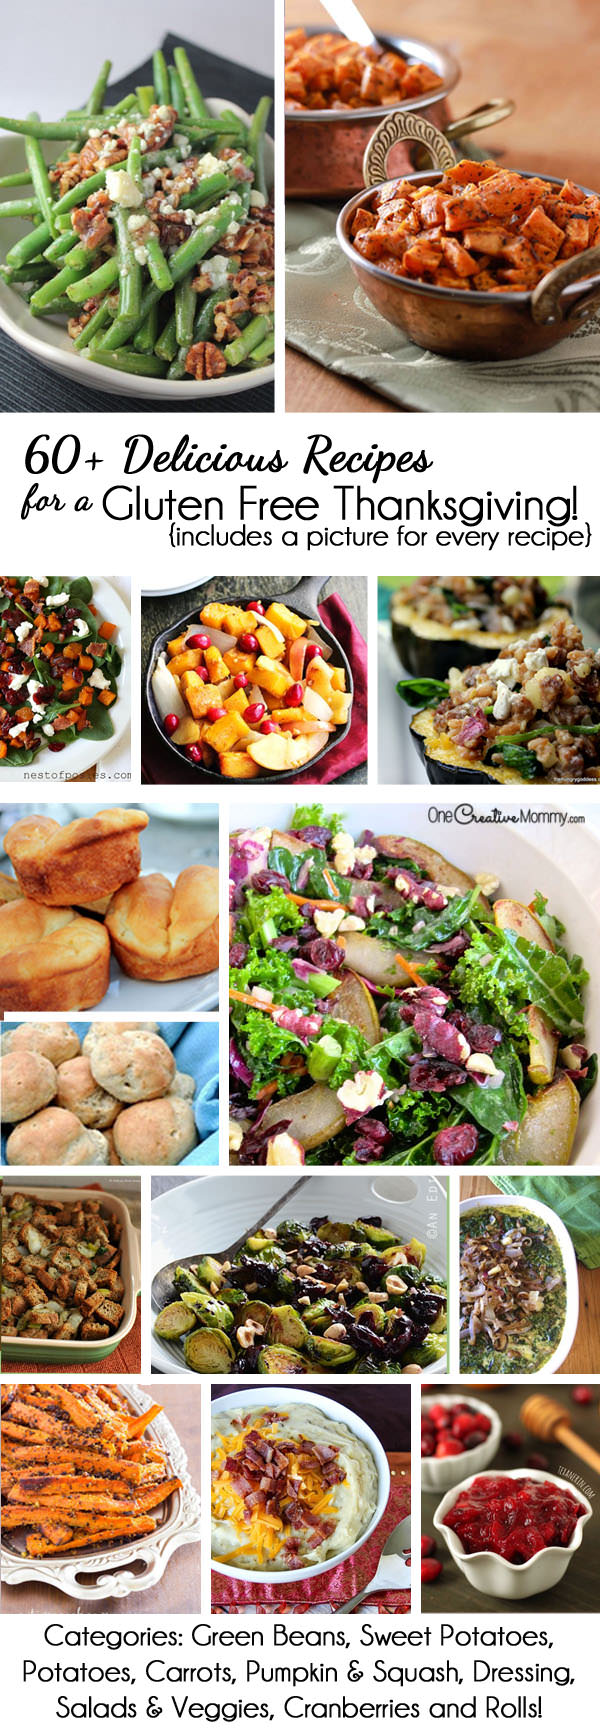 http://onecreativemommy.com/wp-content/uploads/2014/11/gluten-free-thanksgiving-recipes.jpg